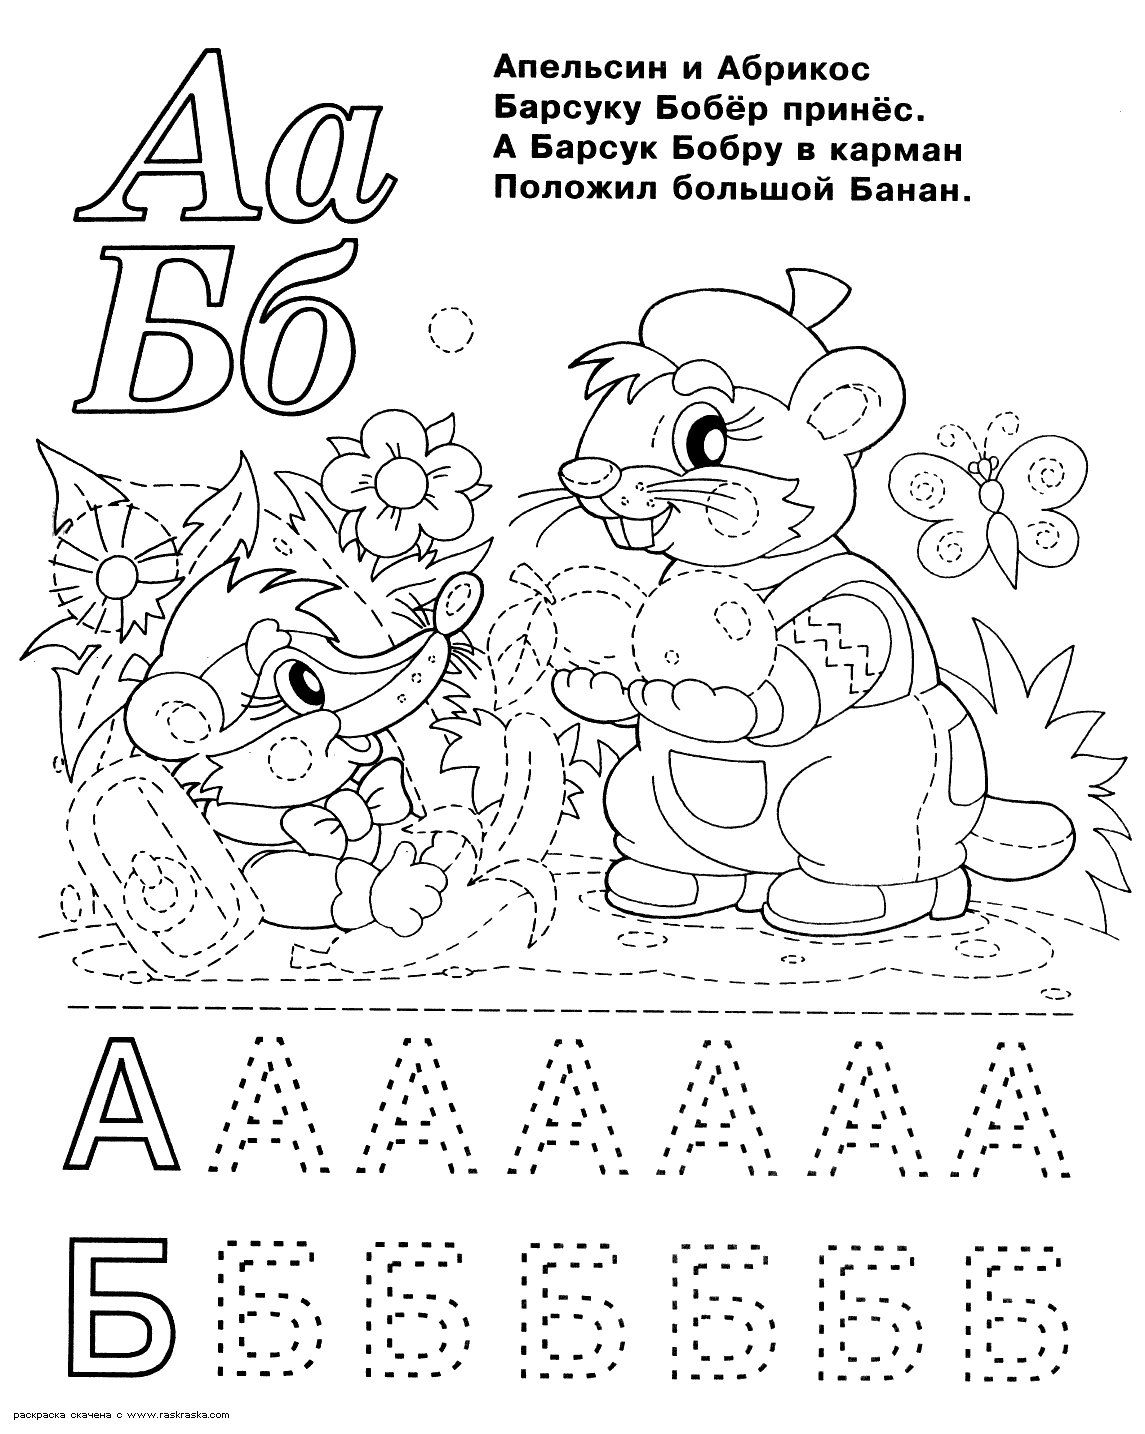 Cyrillic Alphabet Coloring For Children I M Not Finding